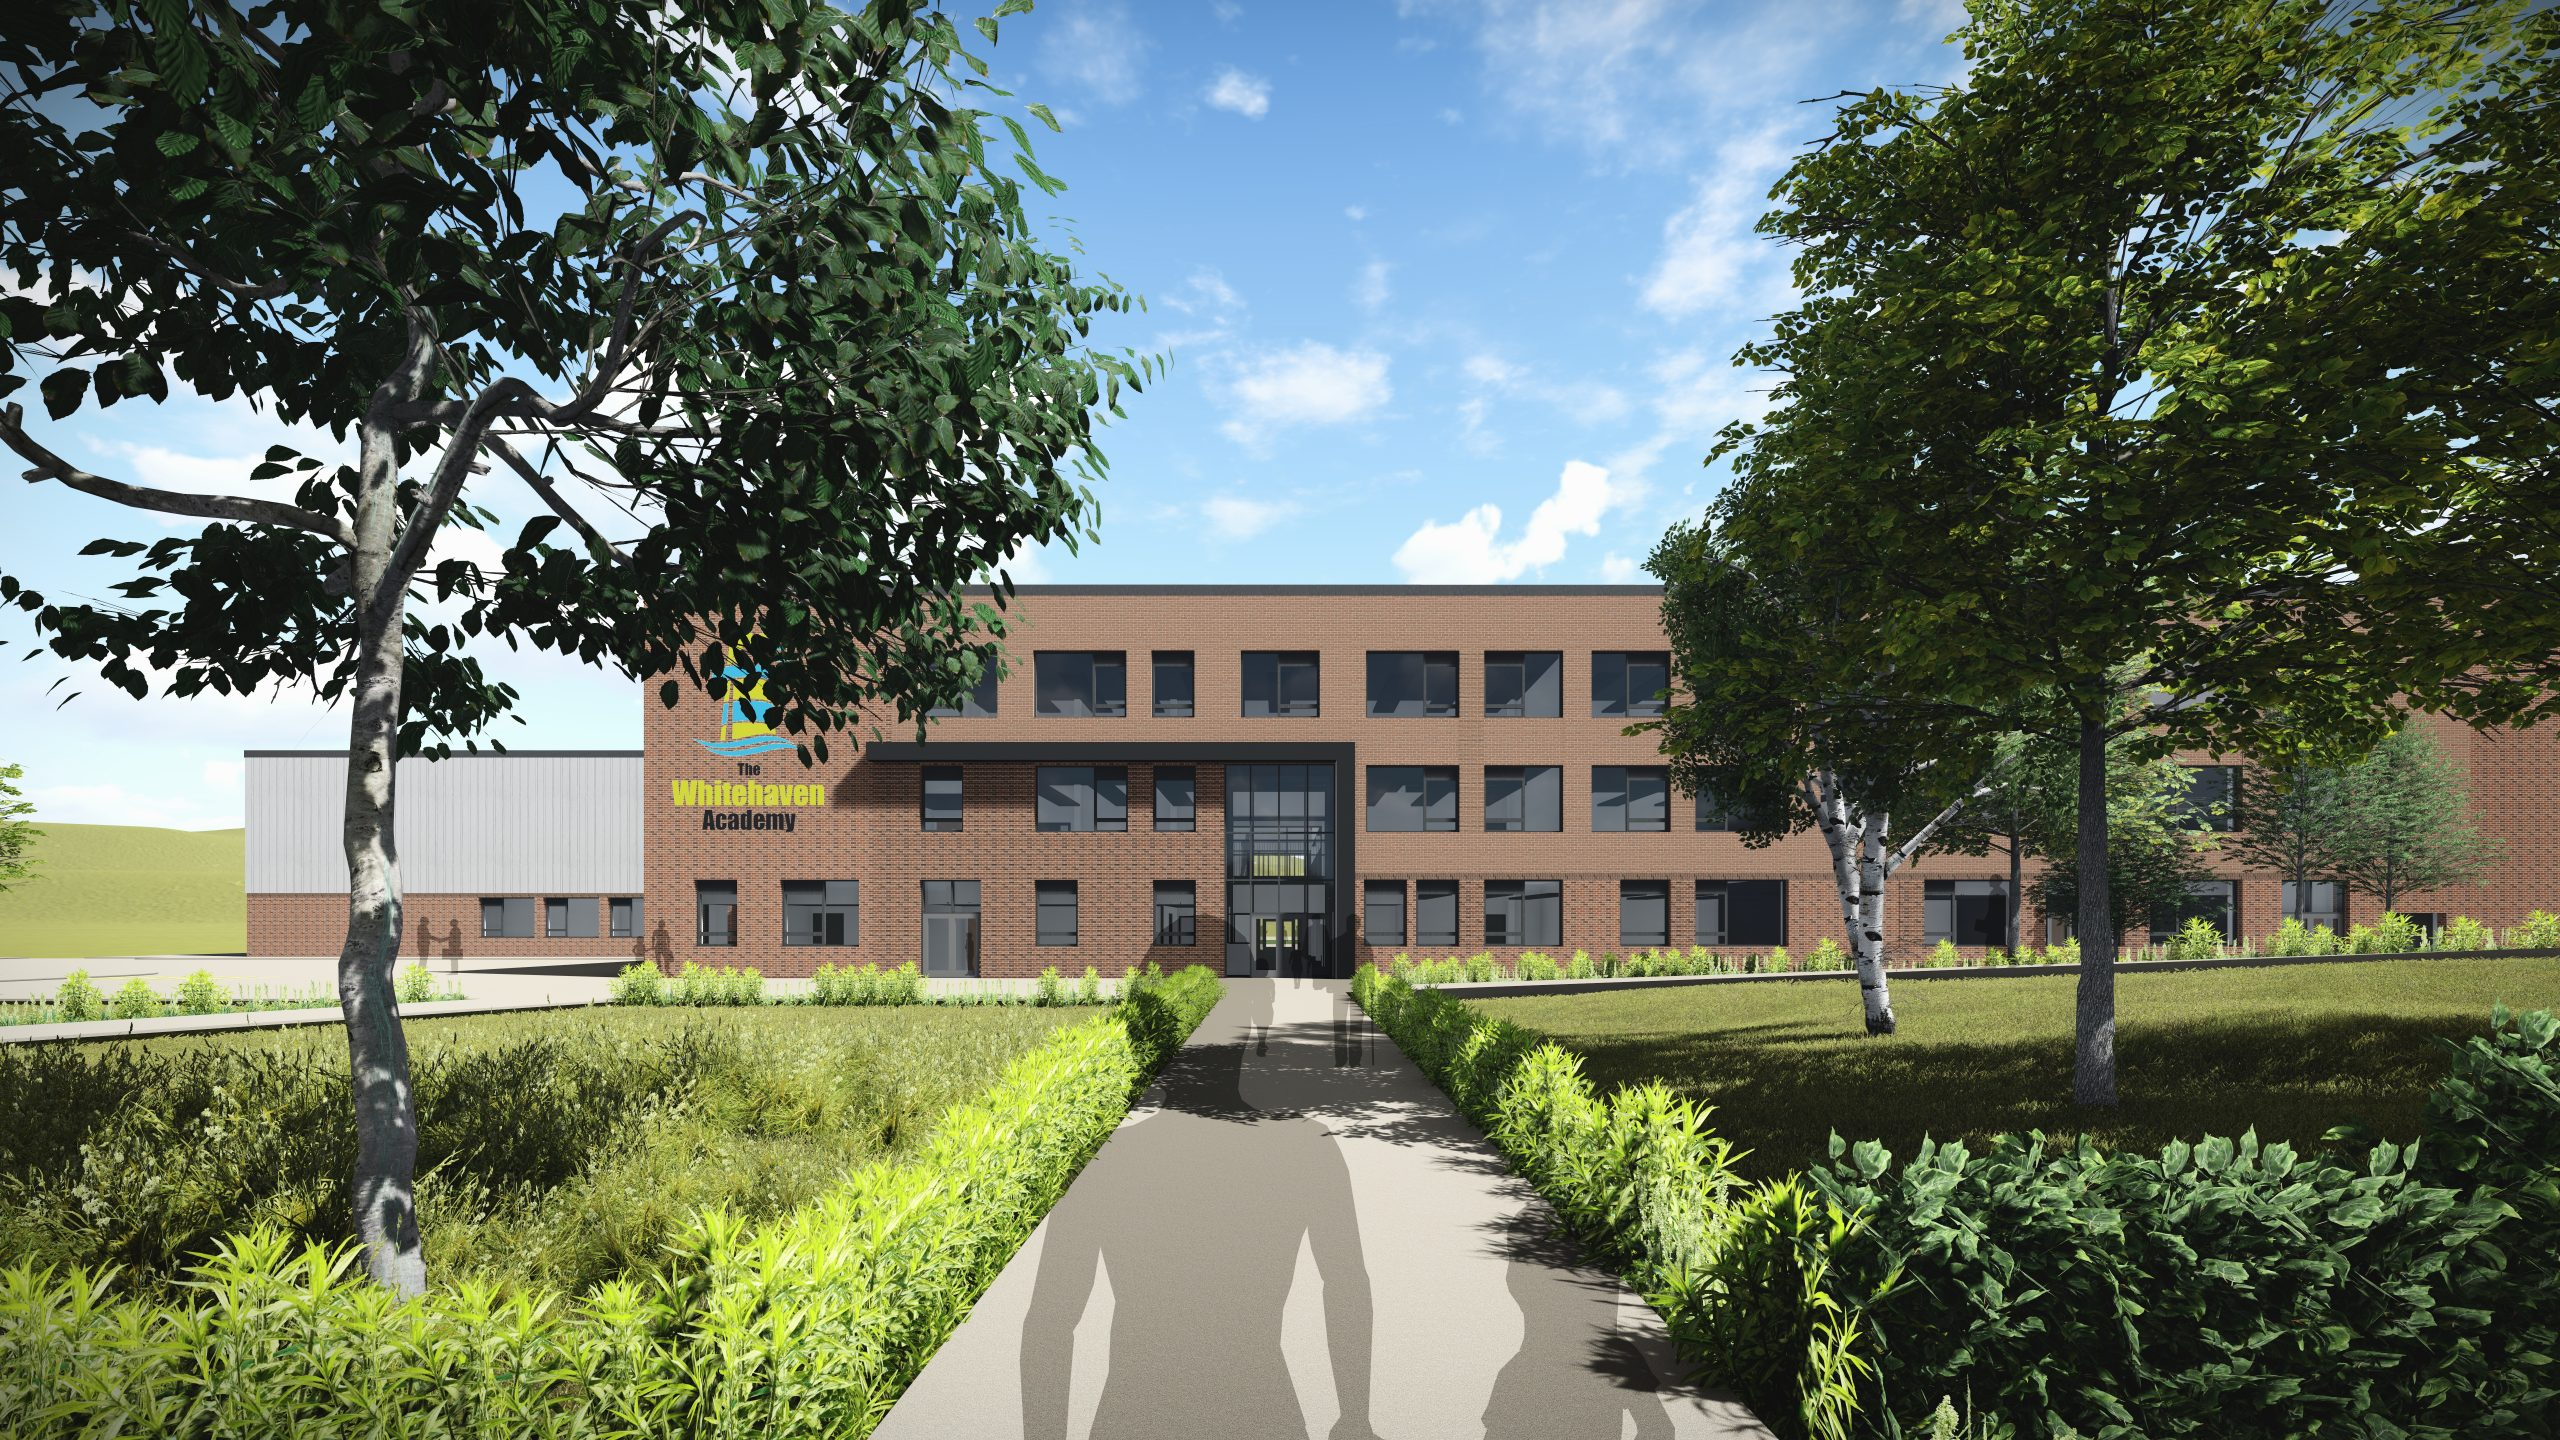 WATES CONSTRUCTION GROWS EDUCATION PORTFOLIO WITH £16M WHITEHAVEN ACADEMY WIN